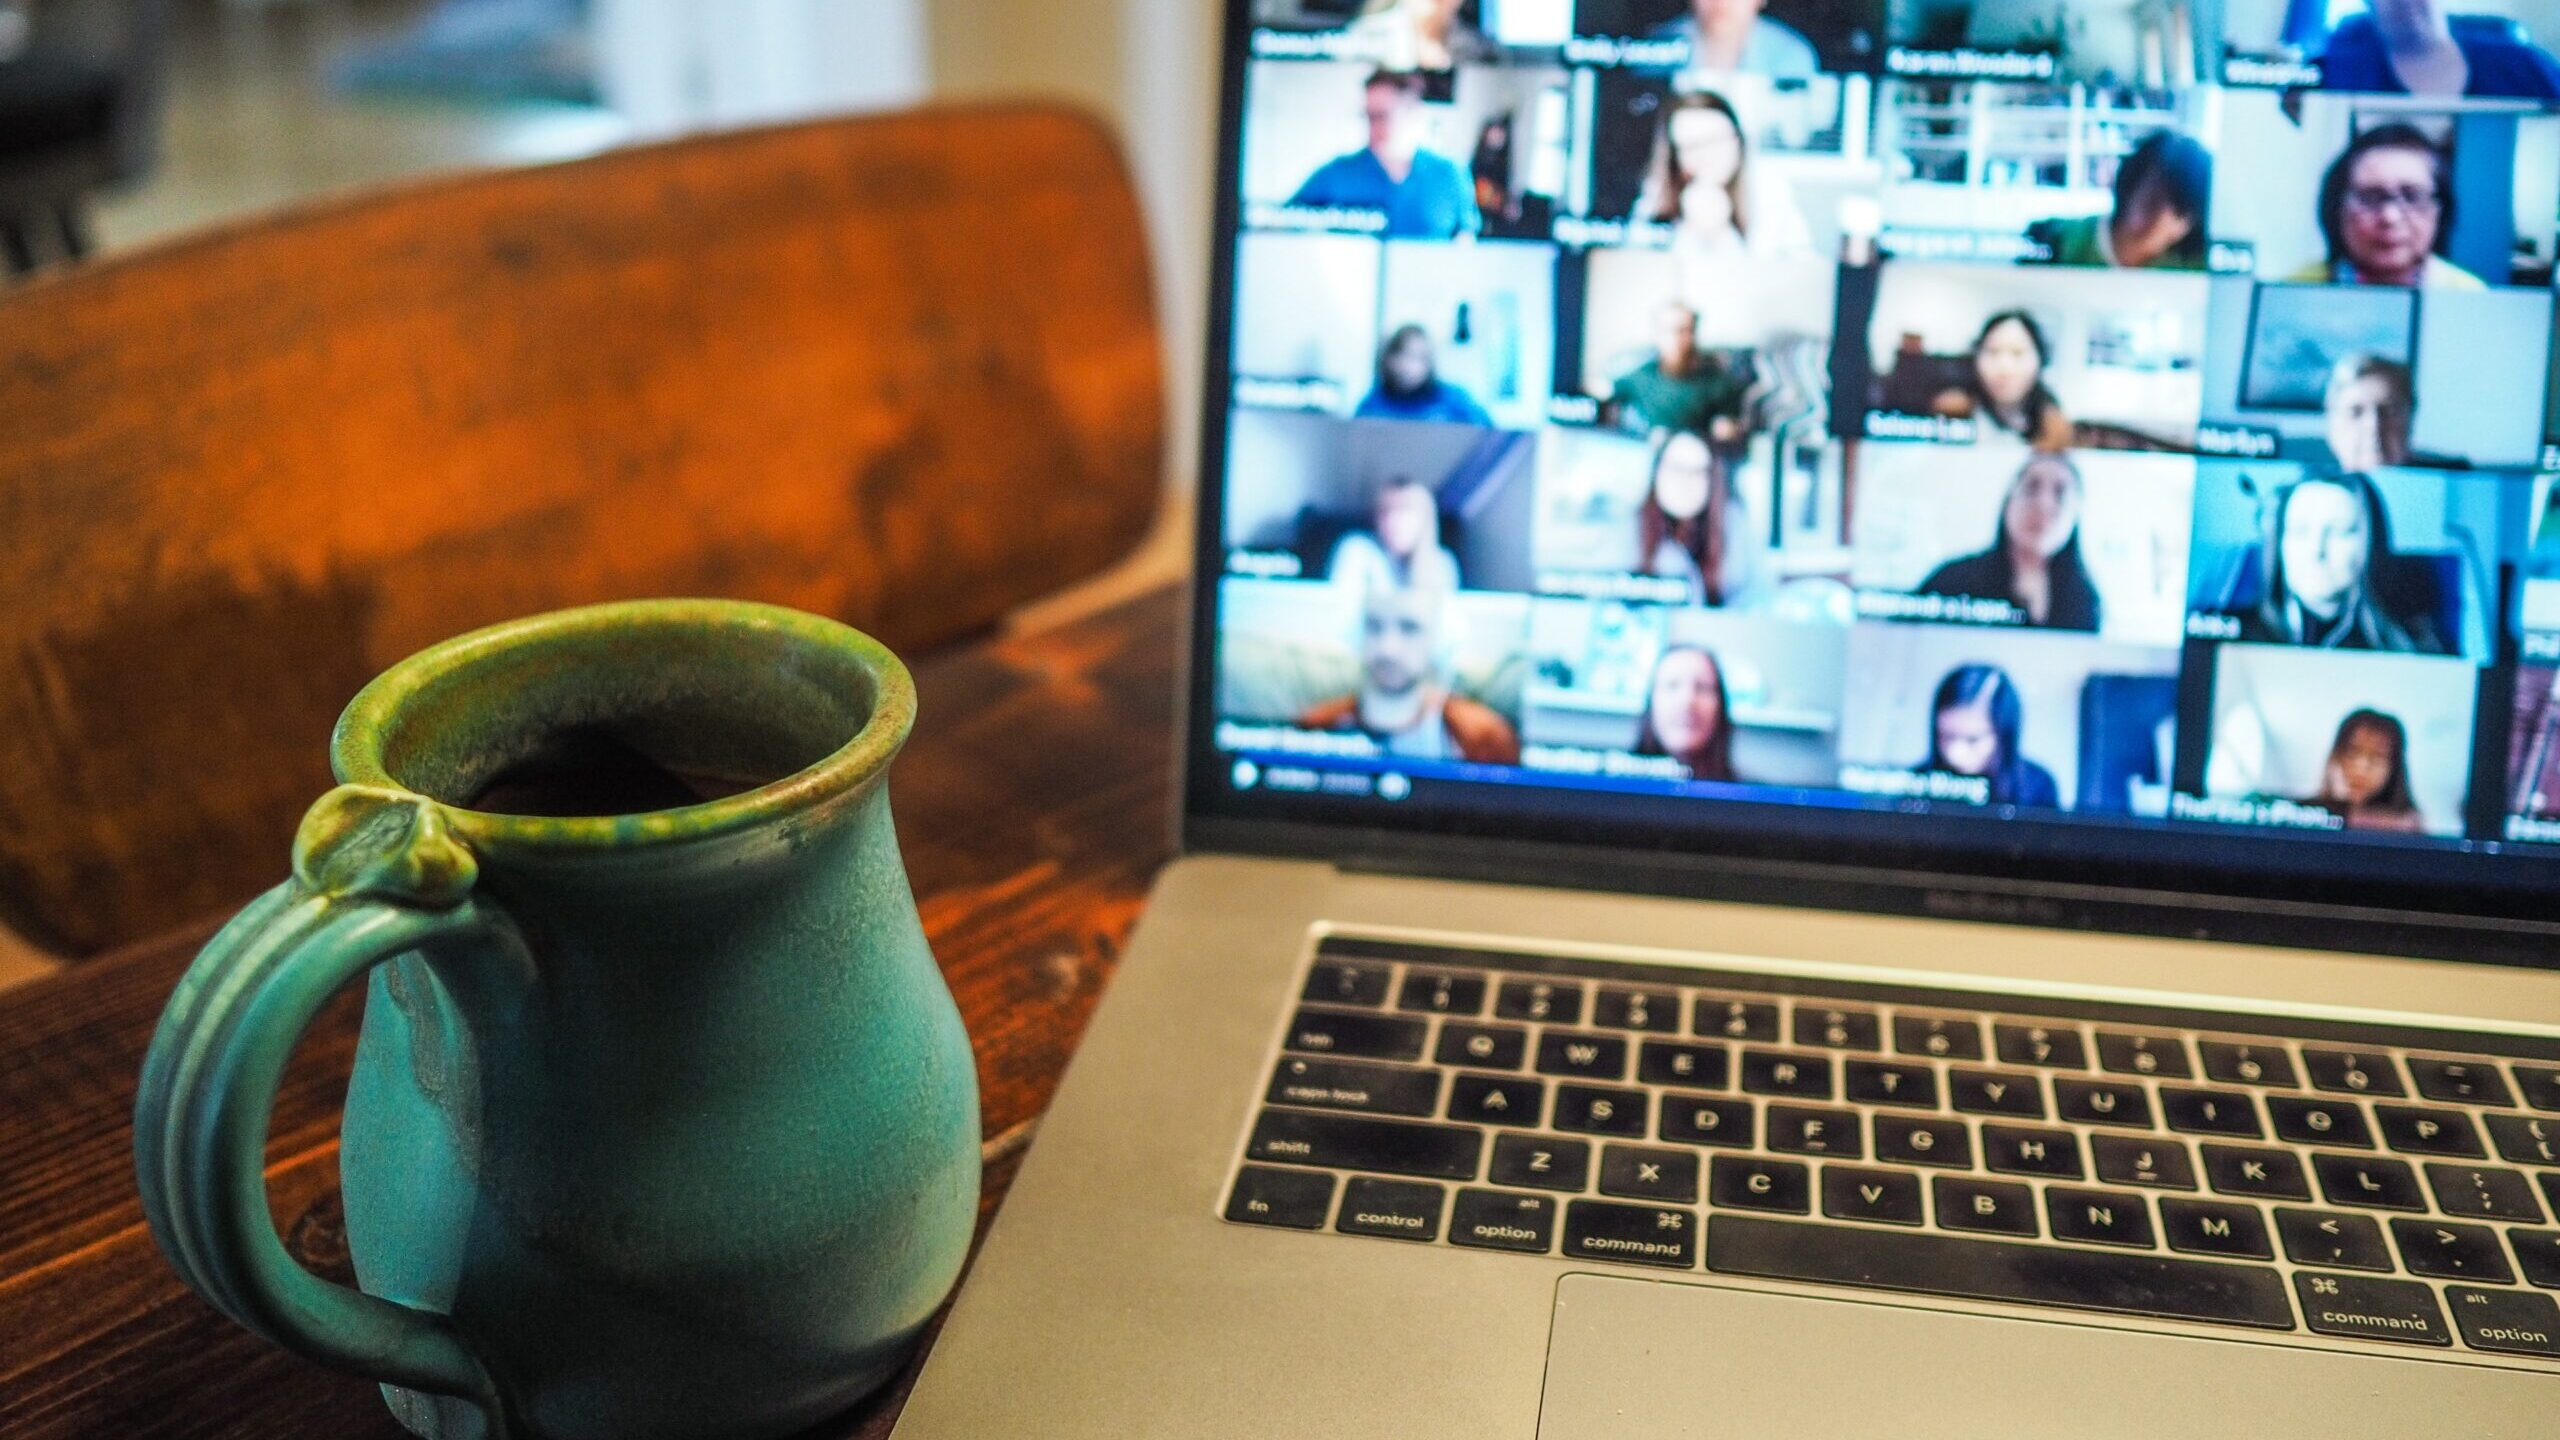 A laptop open to a Zoom conversation with a mug in the foreground